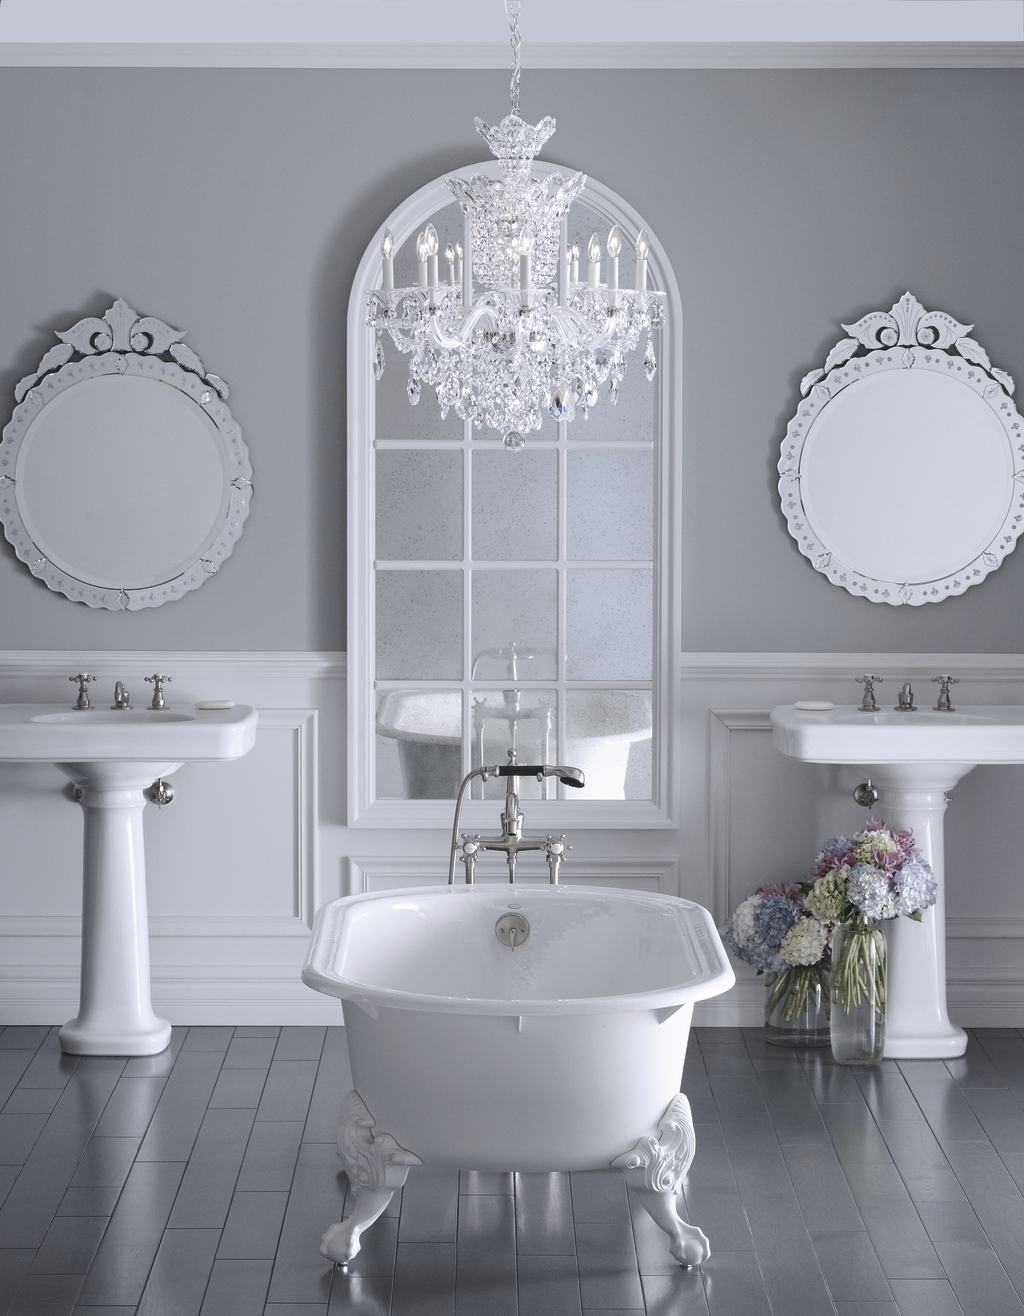 2019 Chandeliers For The Bathroom Intended For Bathroom: Bathroom Chandeliers For Beautiful And Elegant Bathroom (View 1 of 20)